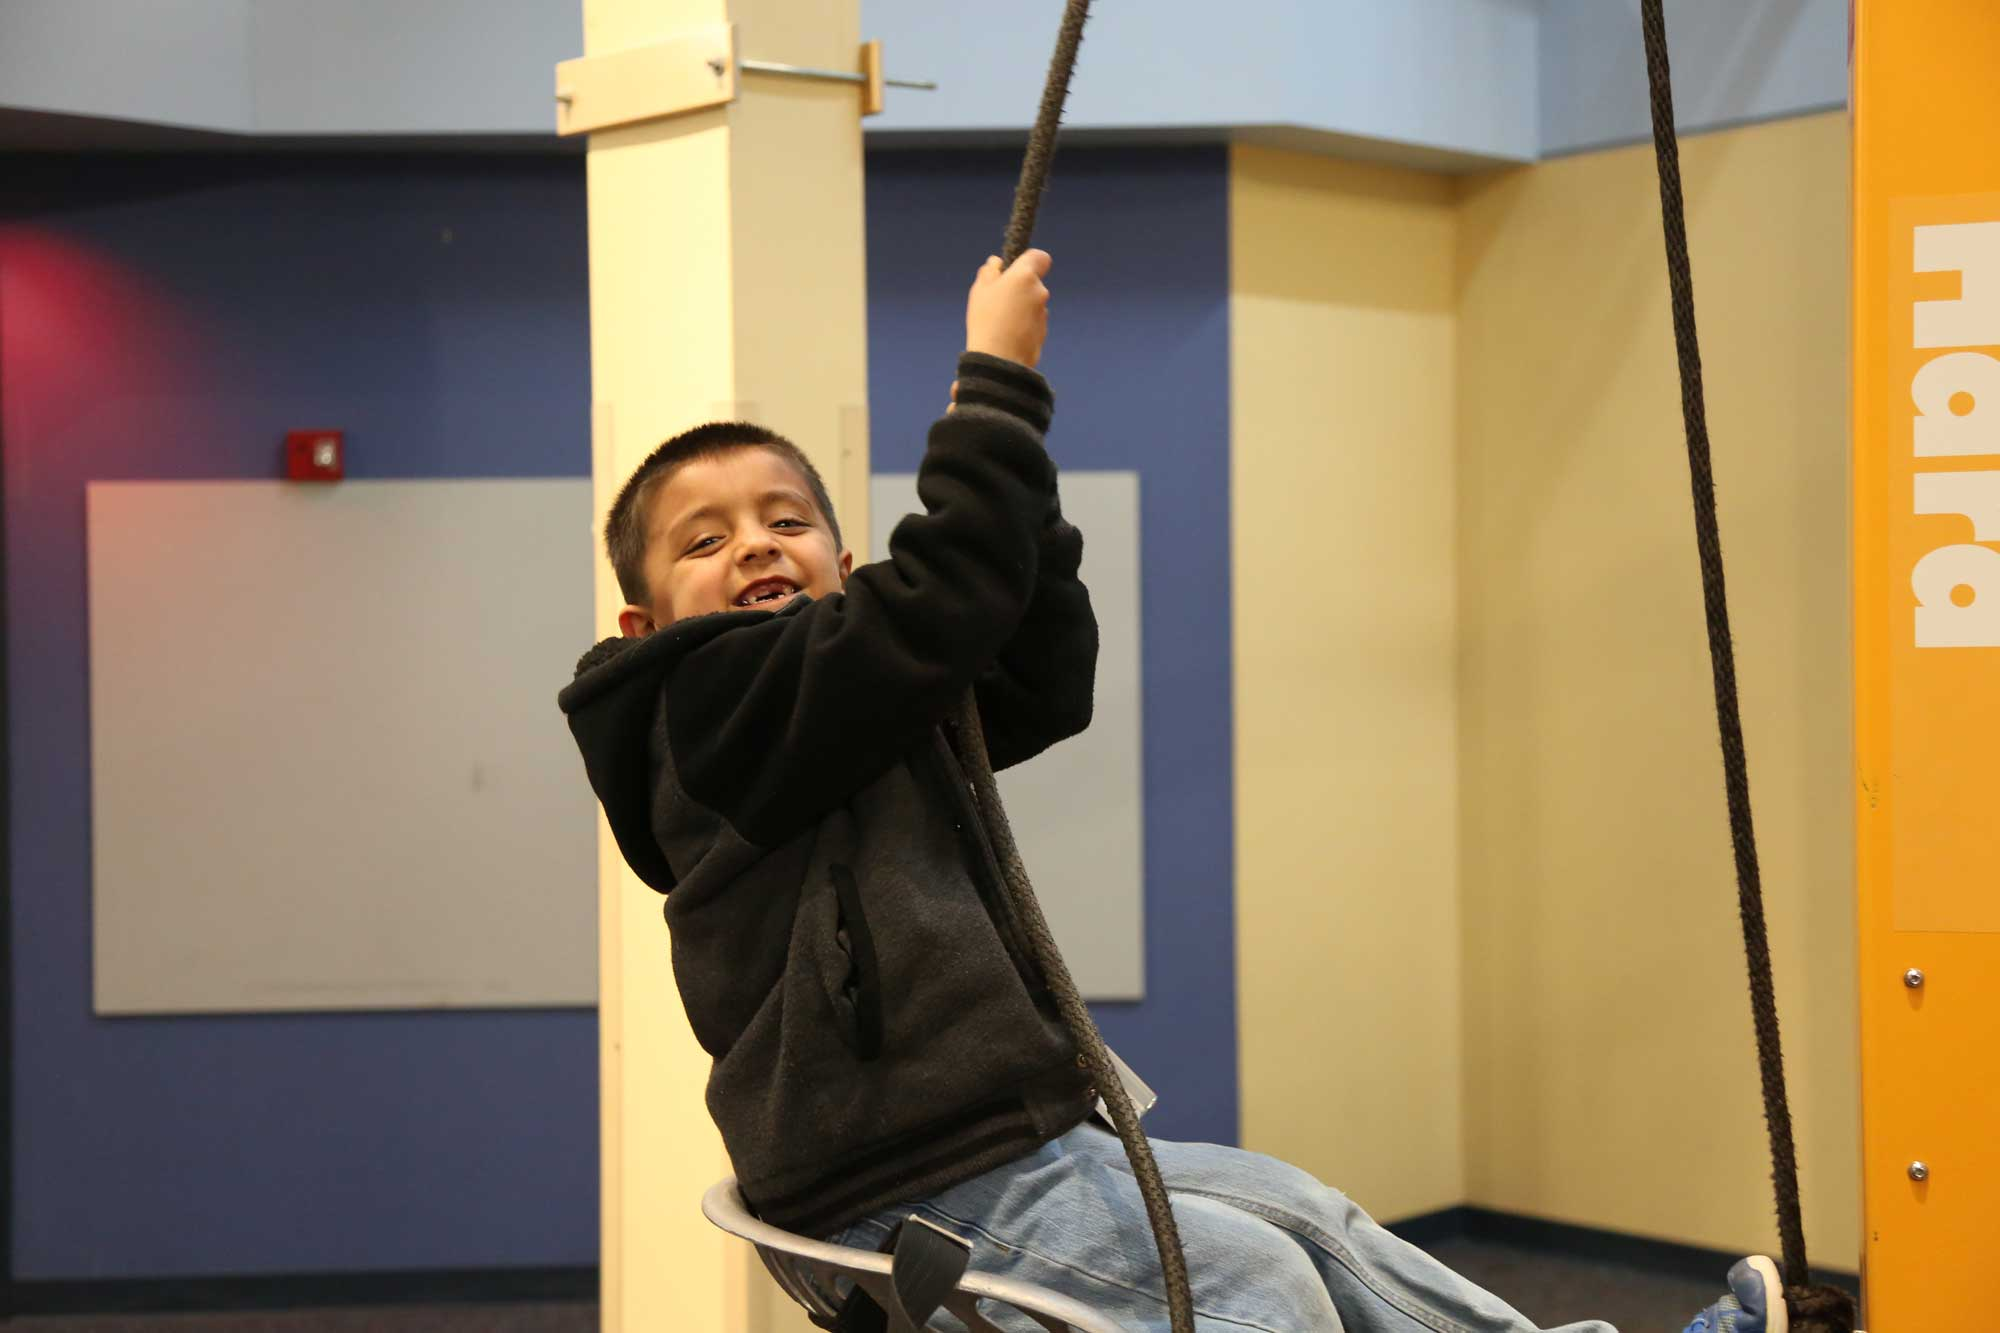 Photo 4 from the Discovery Center Boys Ranch night